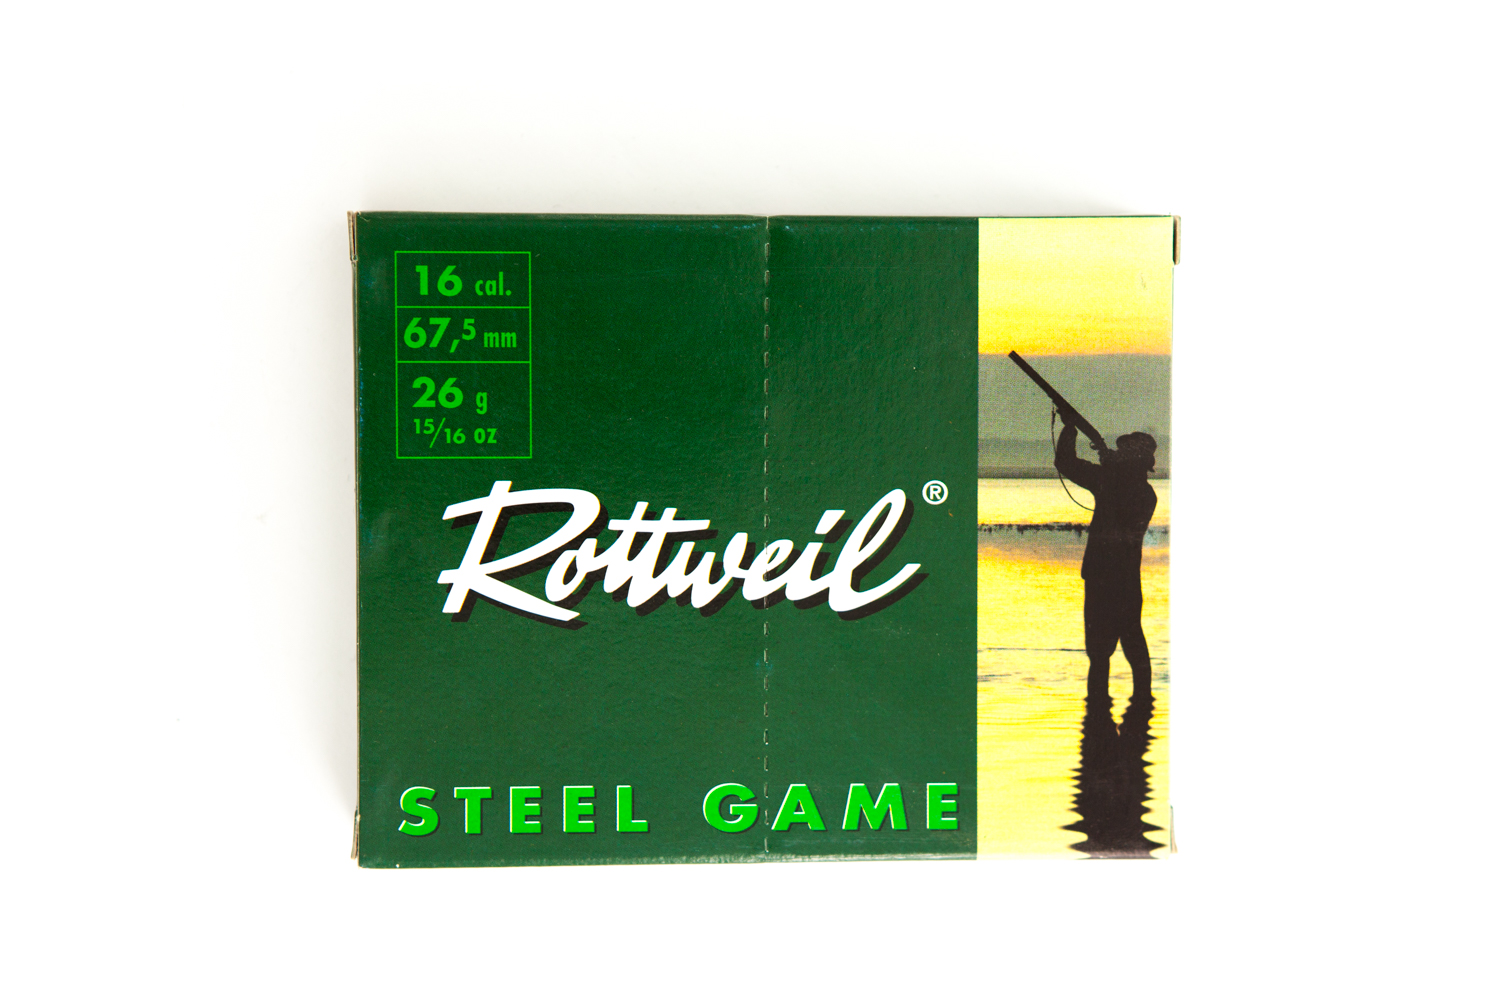 Rottweil 16,67,5 Steel Game